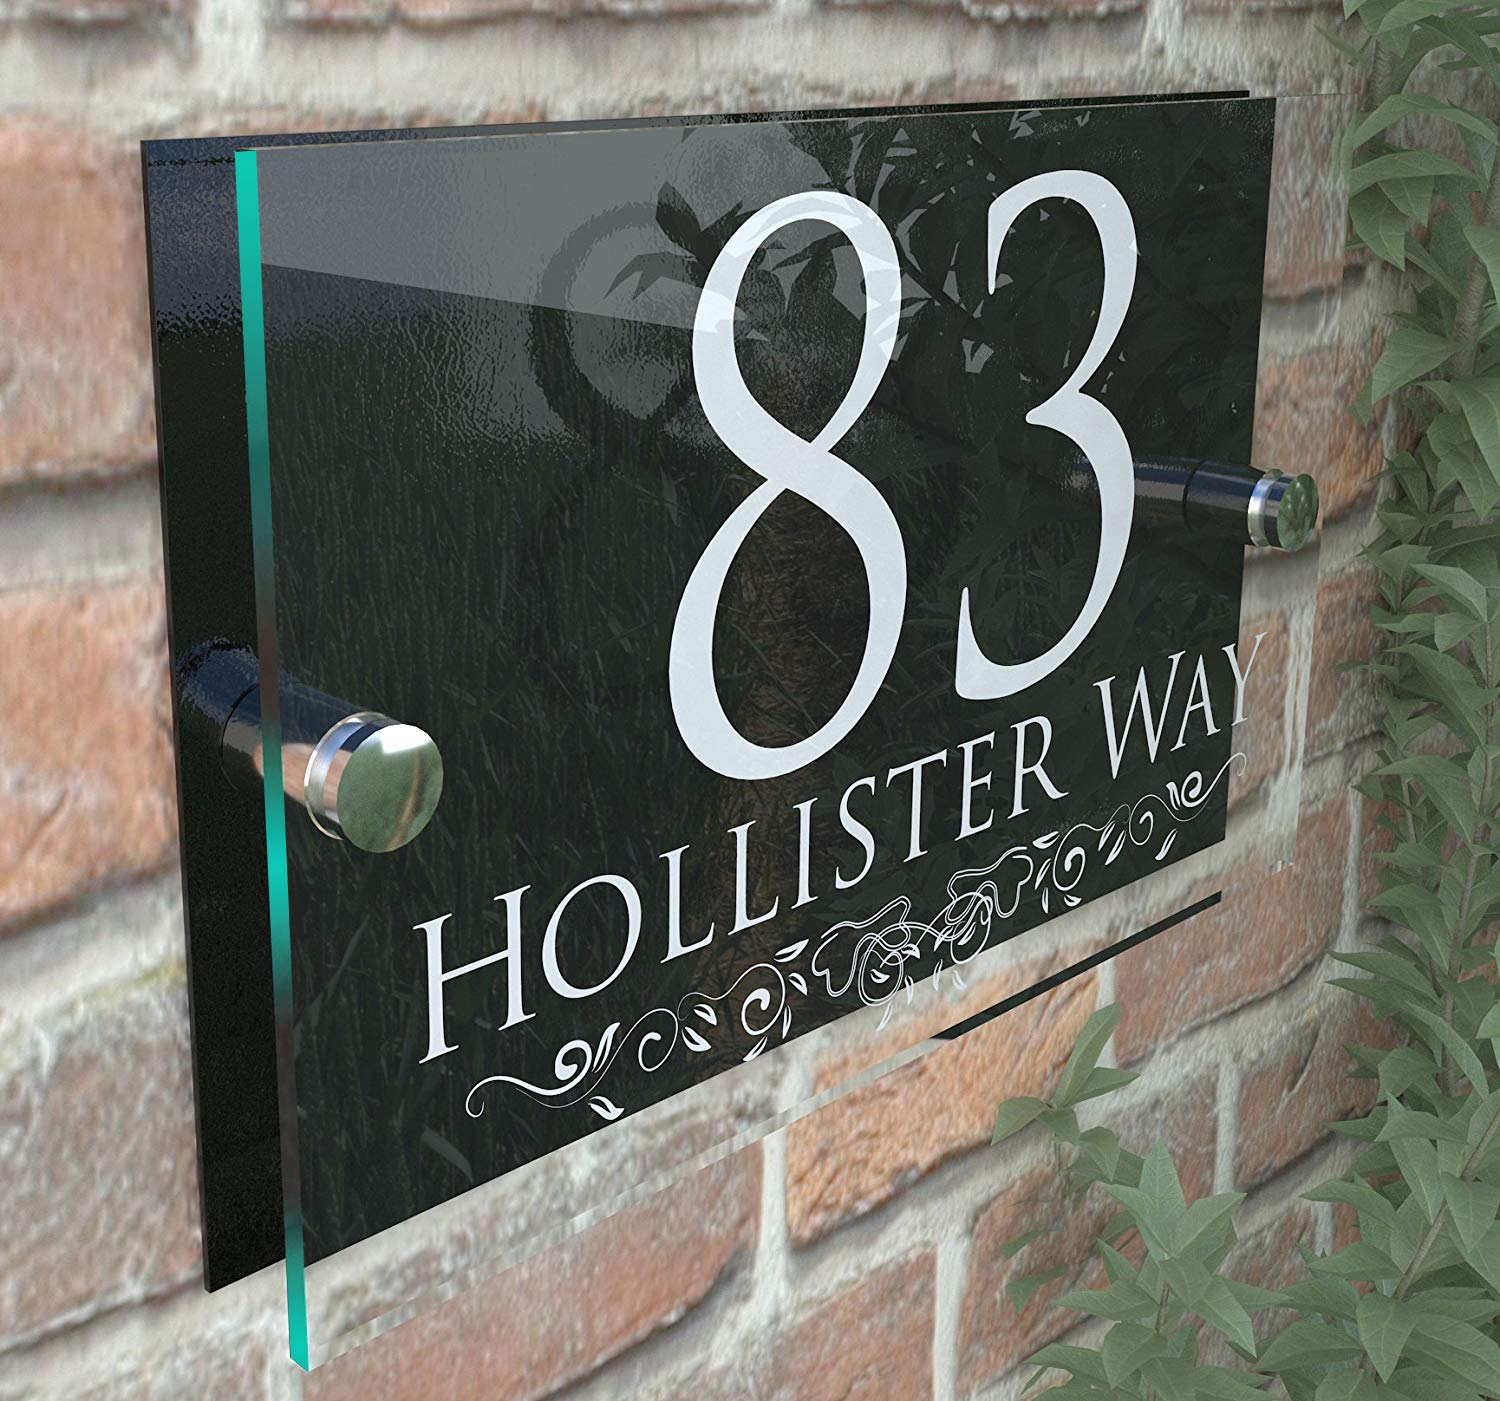 DECORATIVE PERSONALISED WALL PLAQUE DOOR NUMBER STREET GLASS EFFECT ACRYLIC ALUMINIUM NAME - White & Black K Smart Sign Ltd